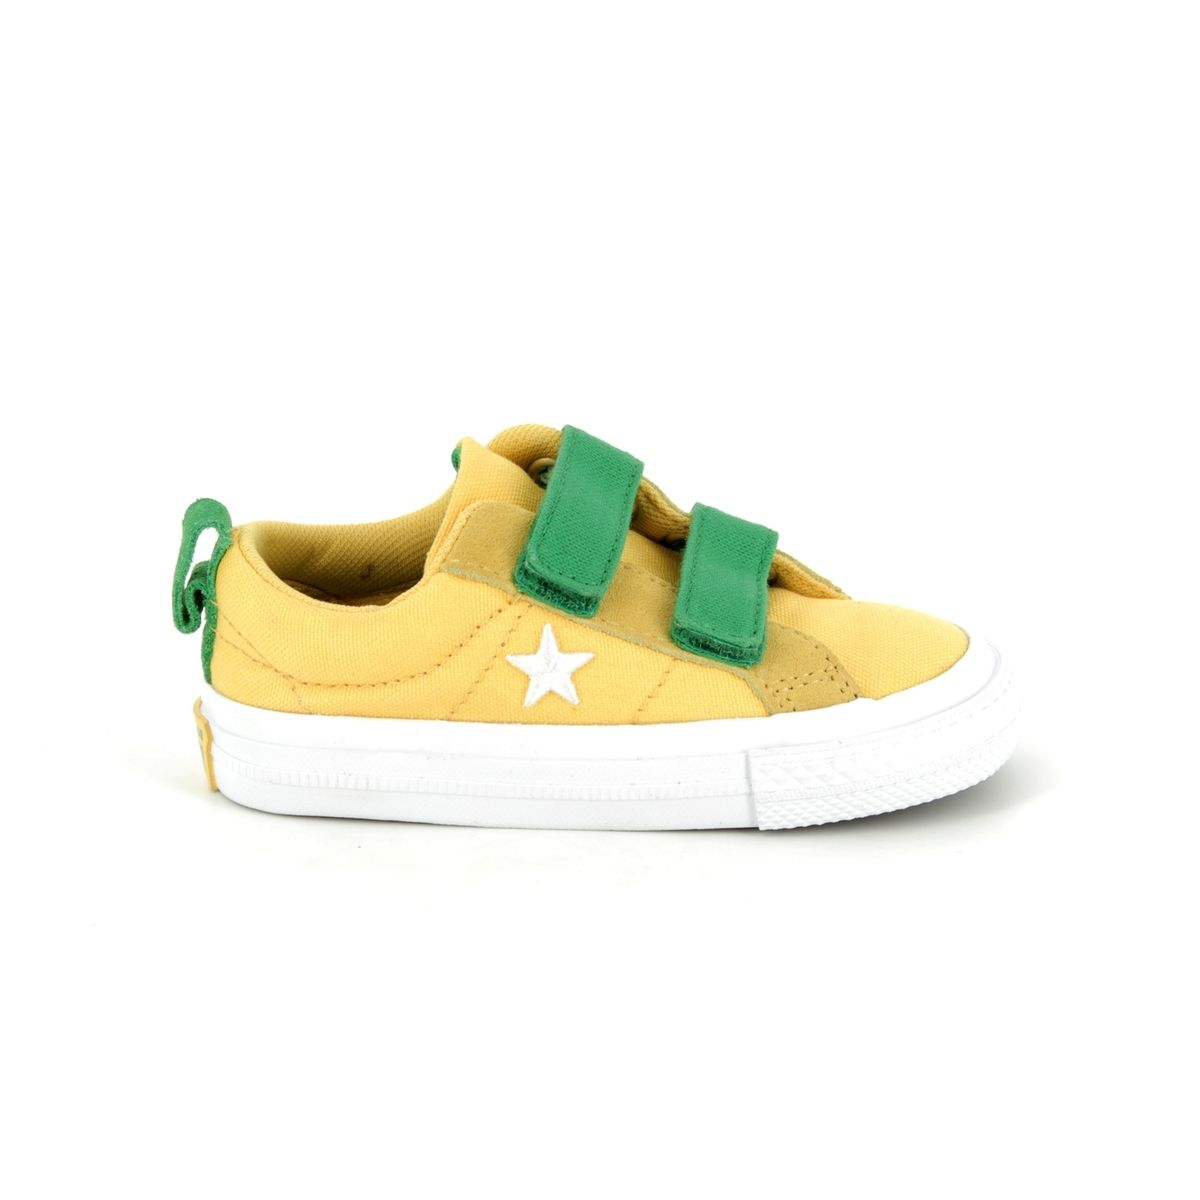 Converse One Star Ox 2V 760764C Yellow Green Combi Velro Kids Trainers ca0a2a96224c